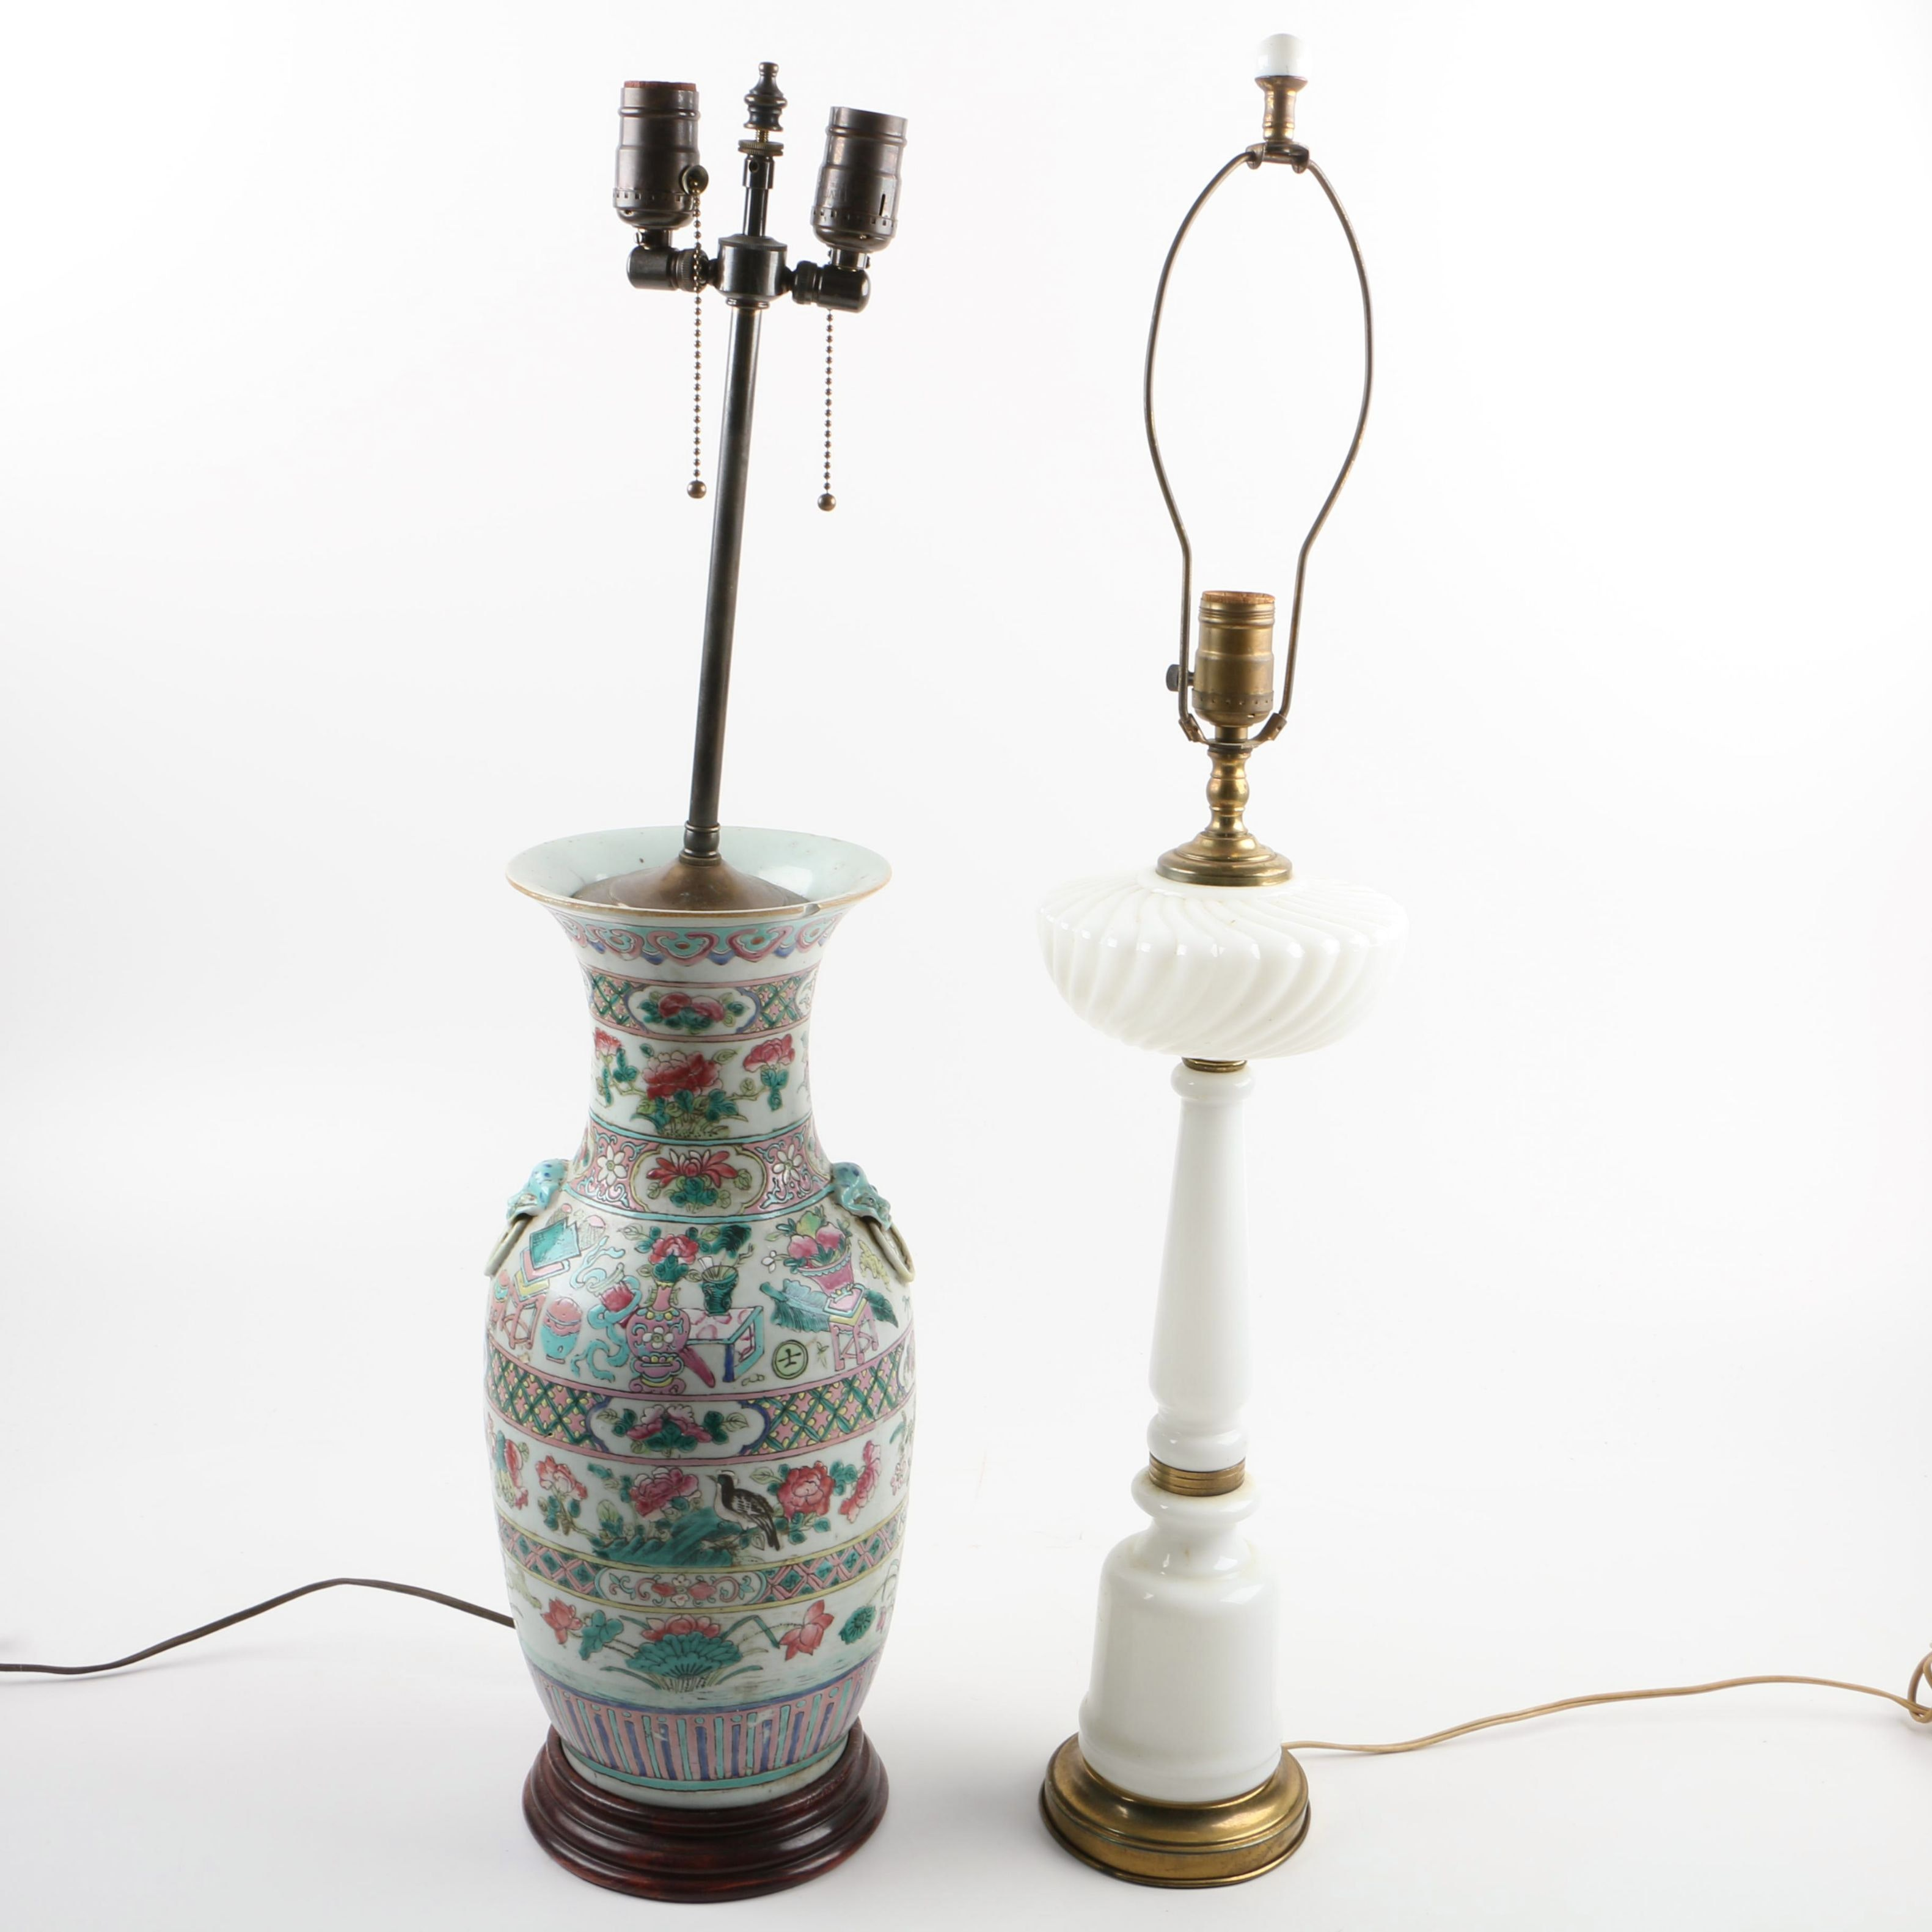 Chinese Porcelain Urn Lamp and Milk Glass Lamp